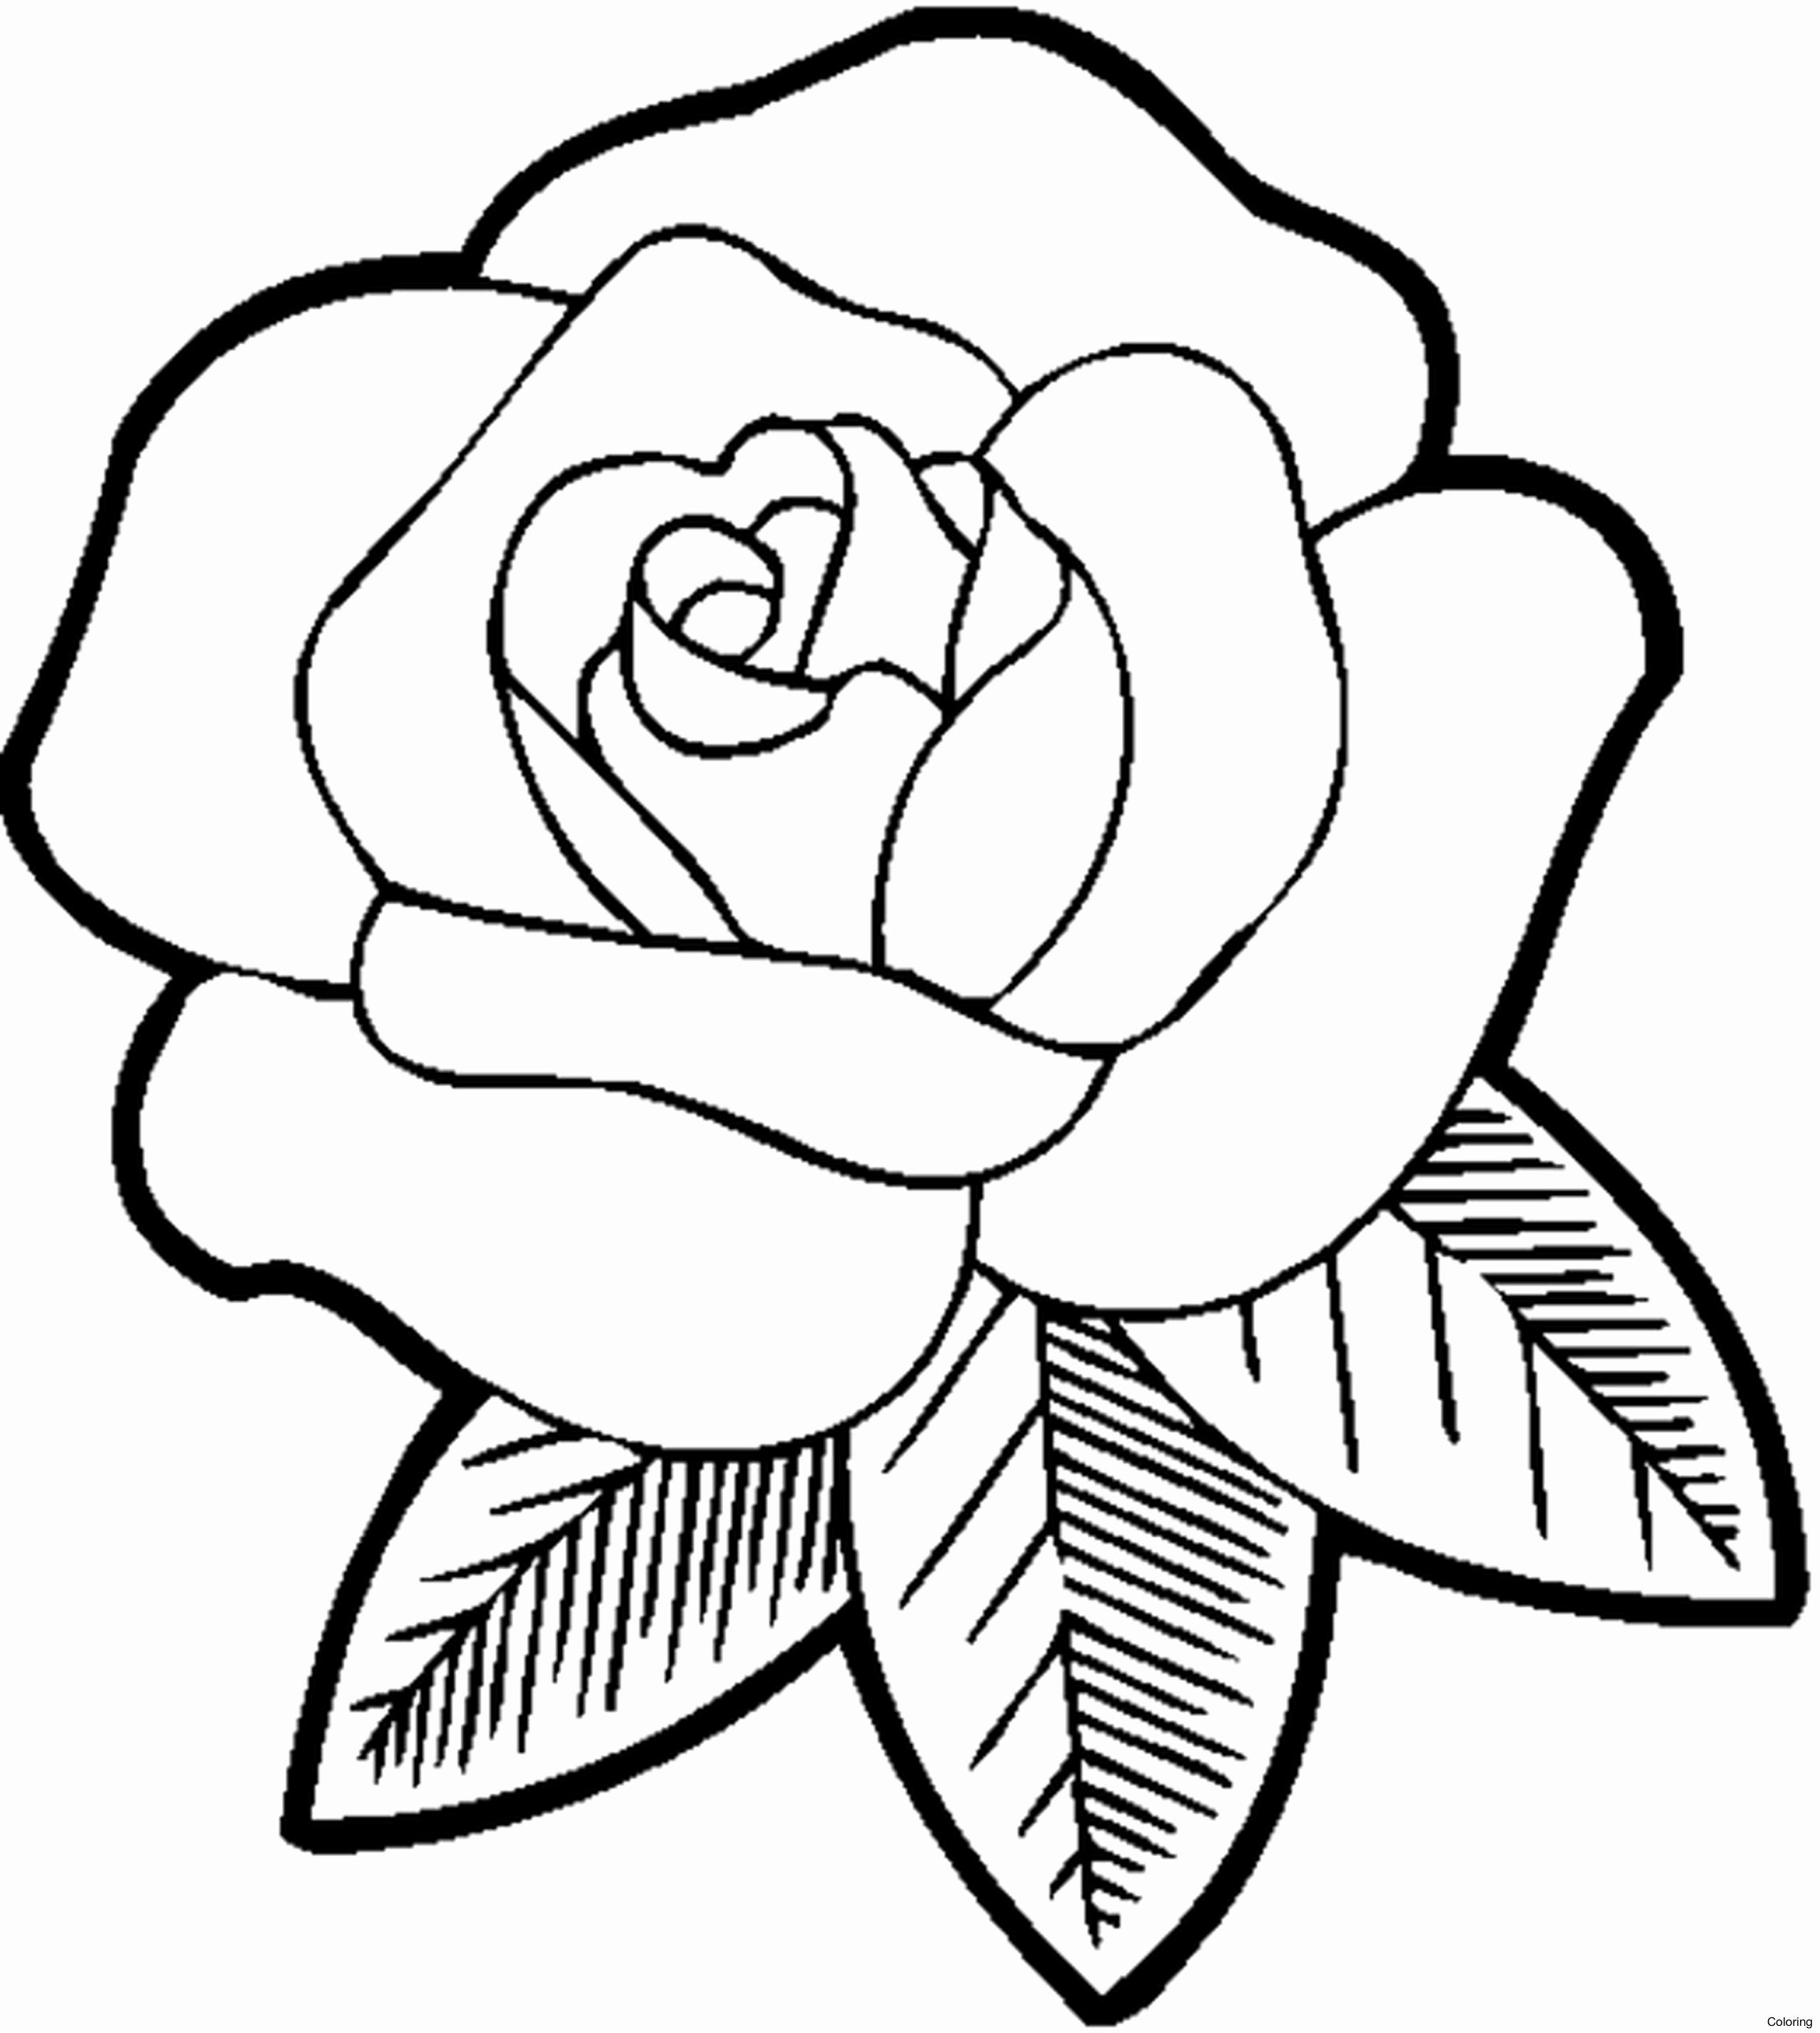 Colouring Roses Flowers Fresh Coloring Pages 54 Outstanding Coloring Pages Crosses In 2020 Rose Coloring Pages Flower Coloring Pages Easy Coloring Pages